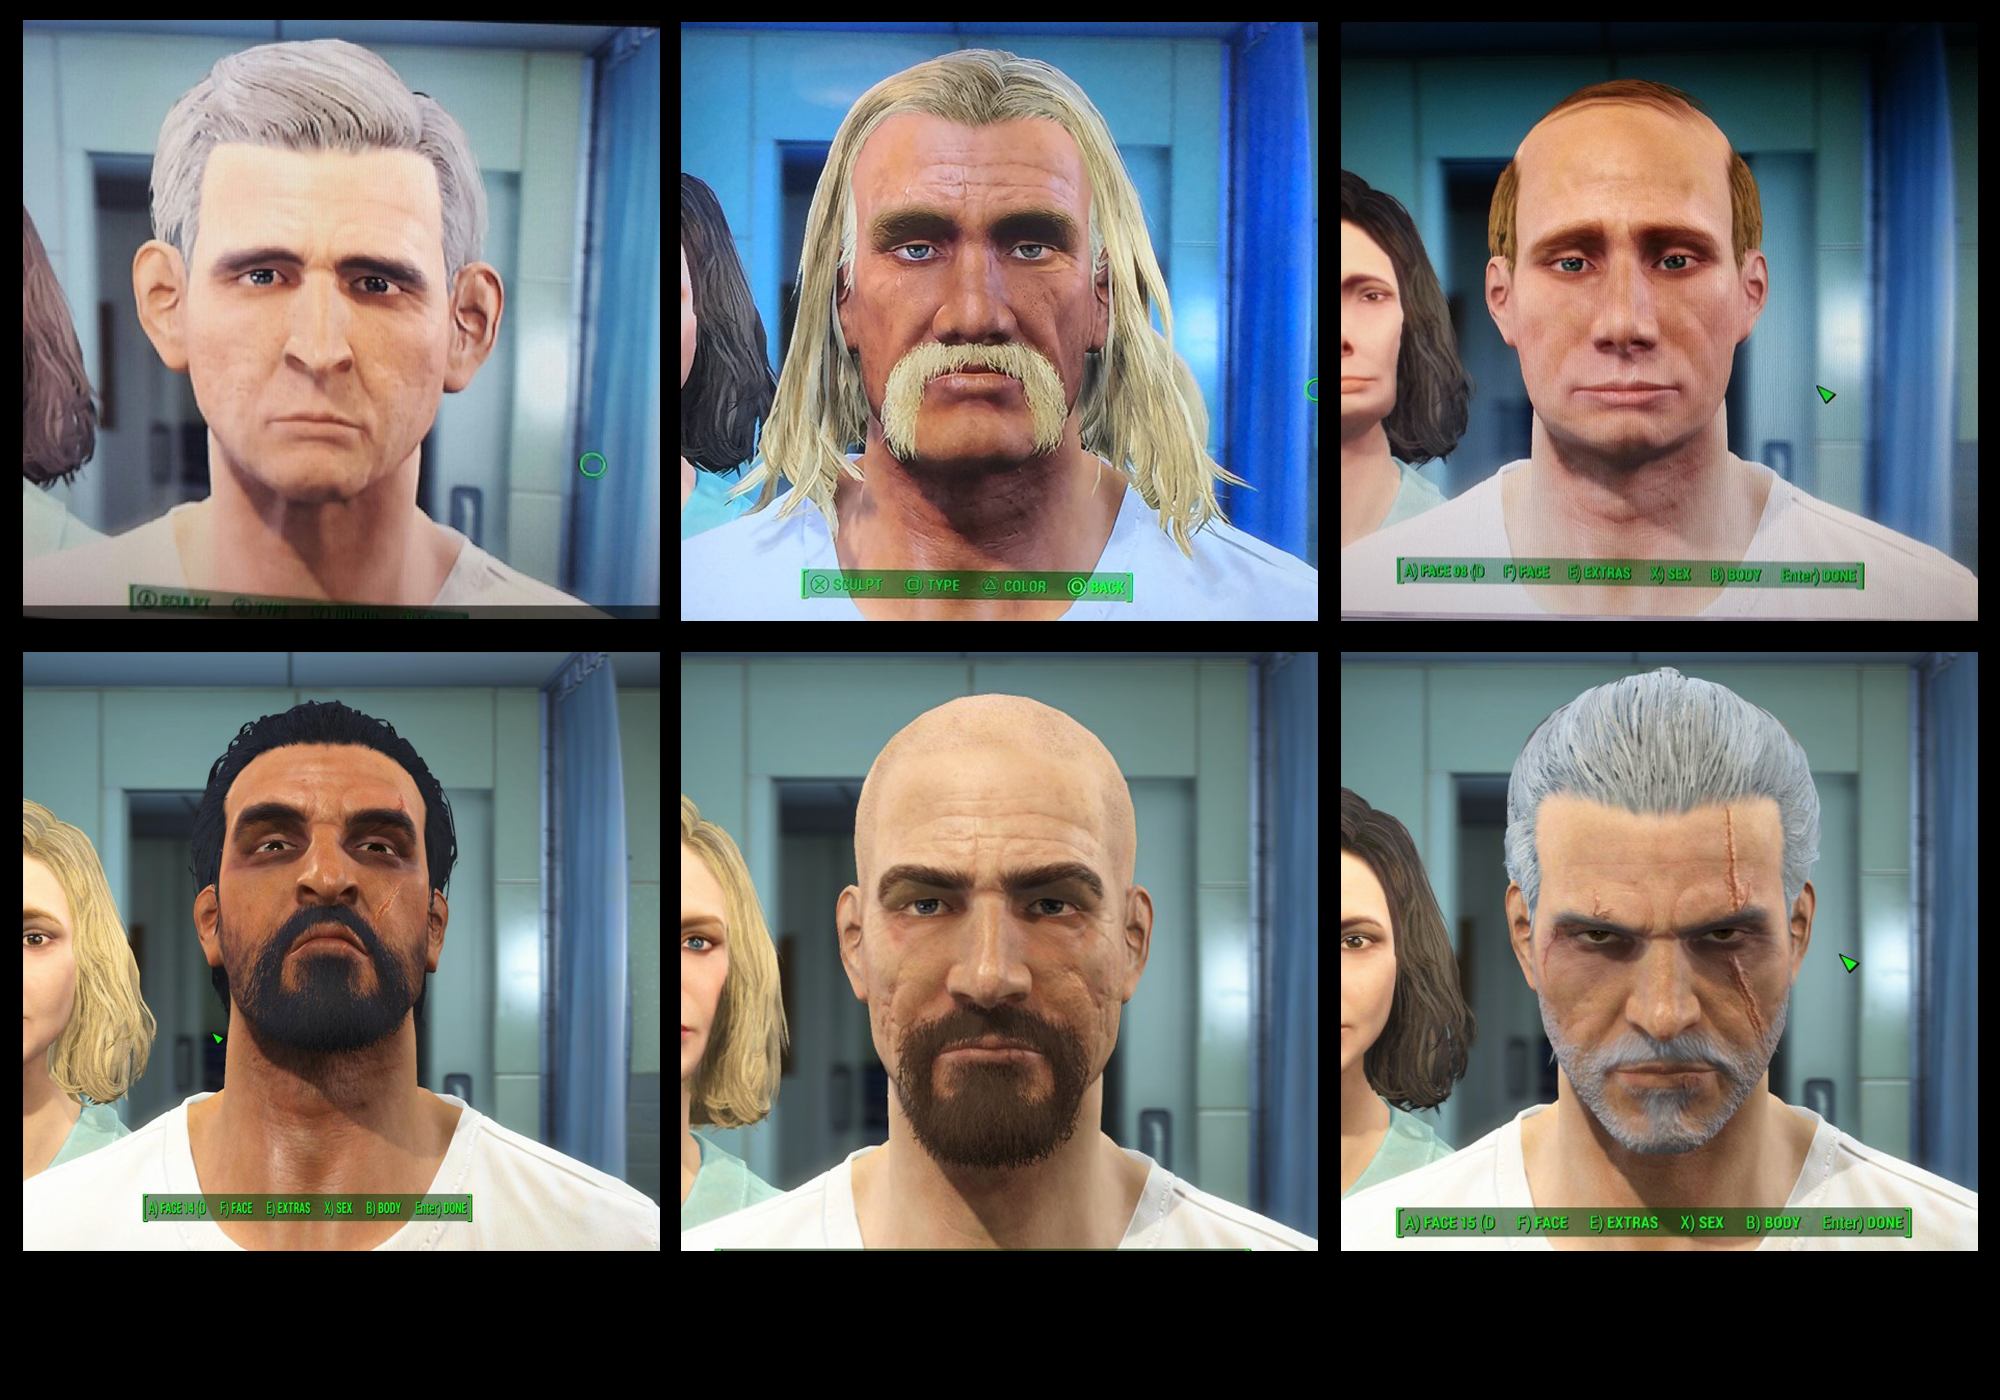 Photo of Putin or Gralt? The Fallout 4 doubles competition is in full swing